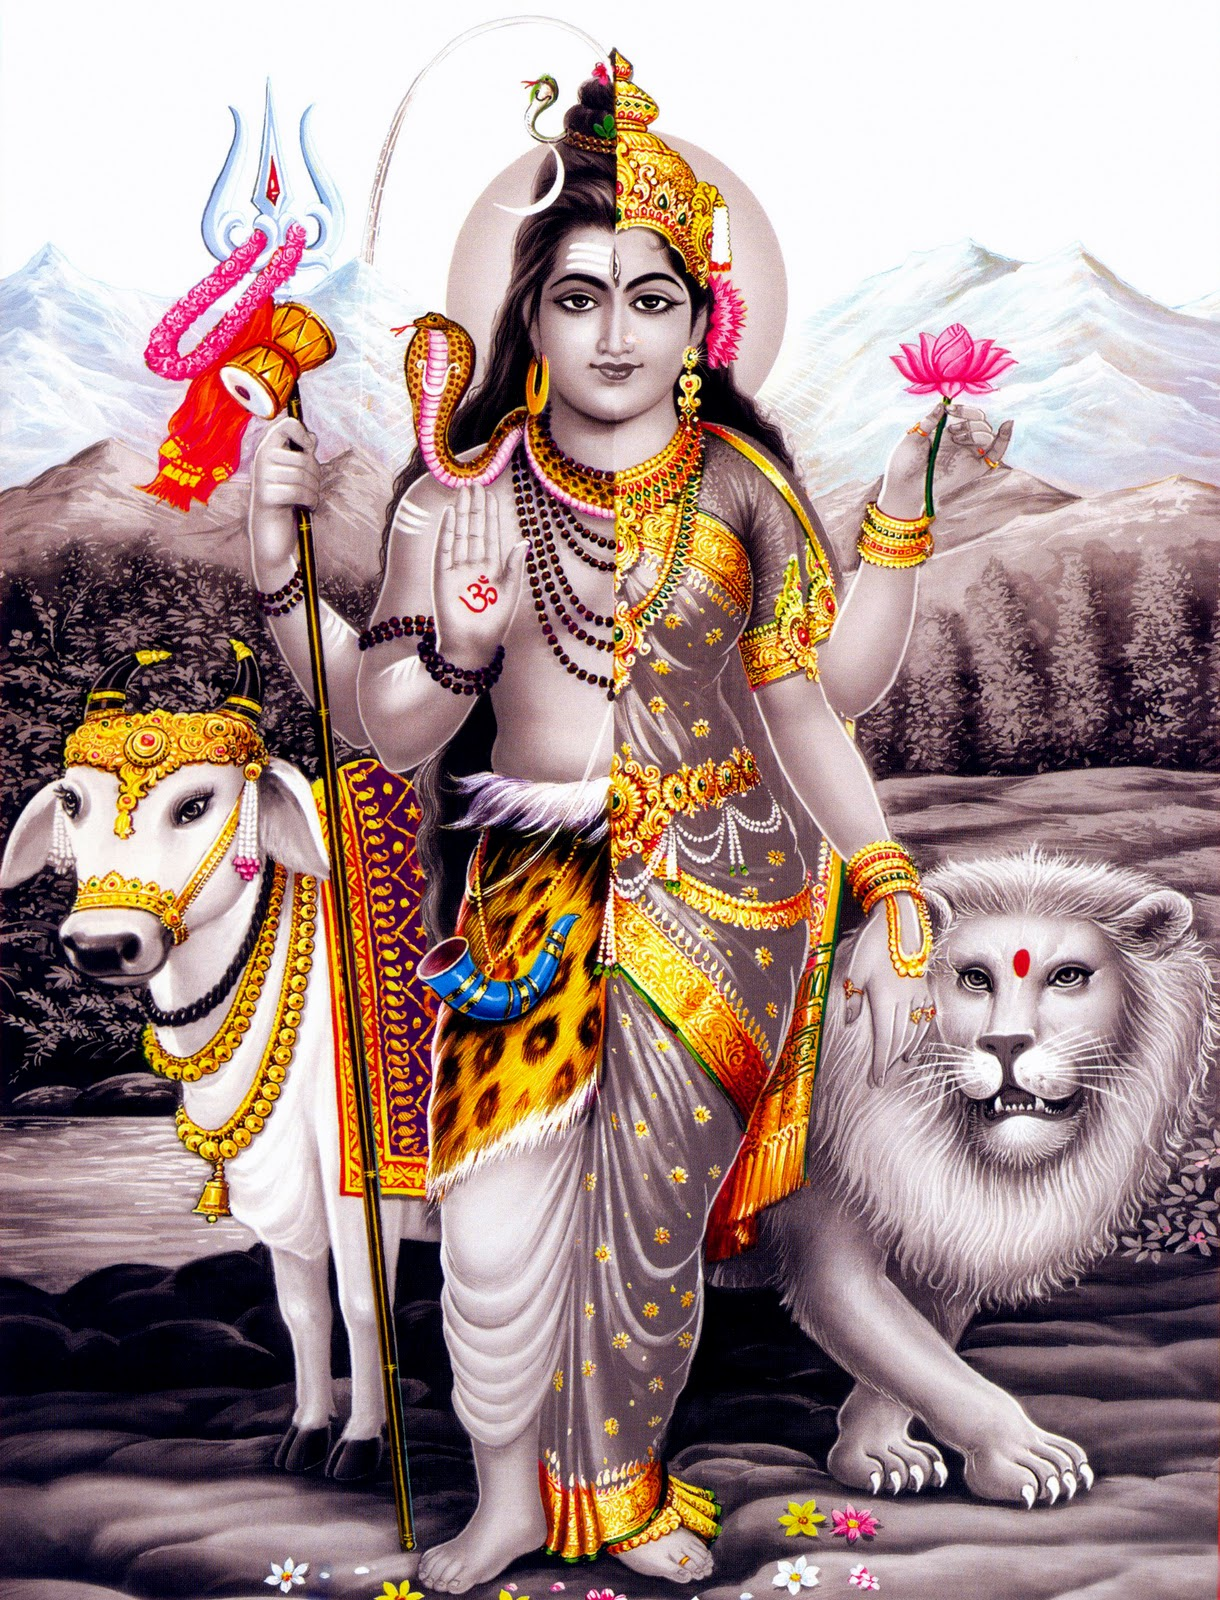 Great Wallpaper High Resolution Lord Shiva - siva+%2526+sakthi+images+%25281%2529  Best Photo Reference_89766.jpg